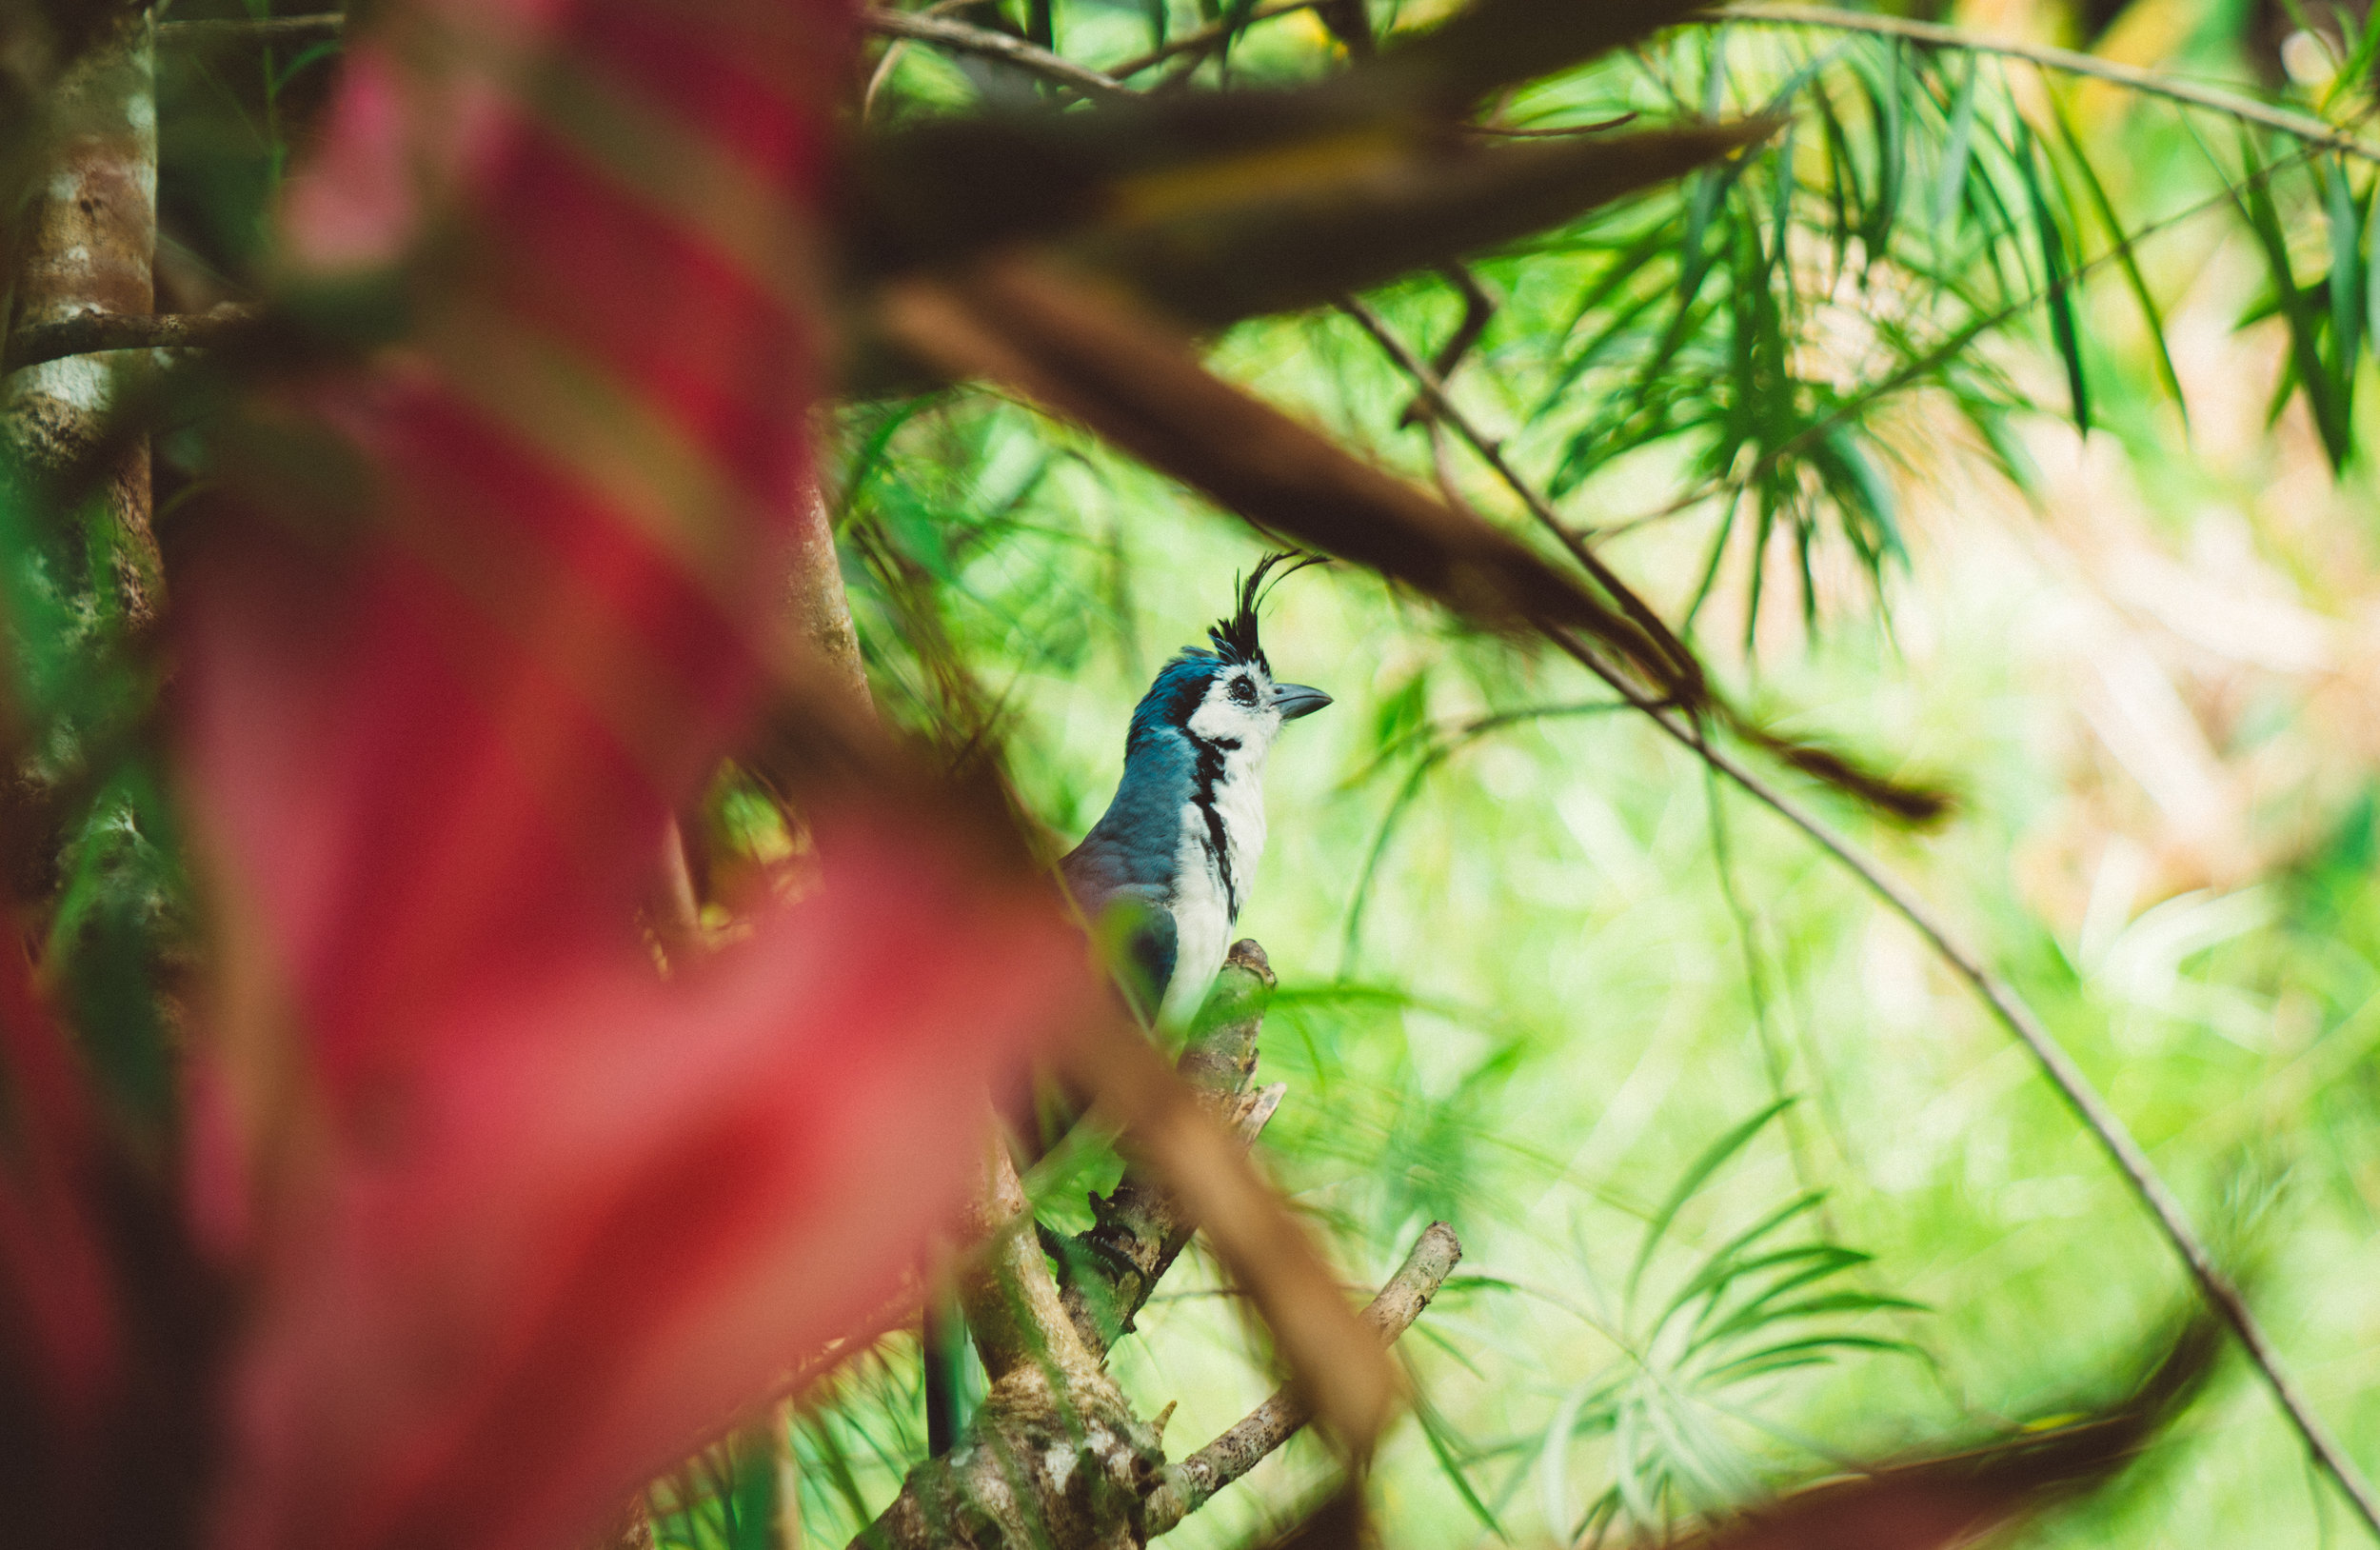 I spotted this White-throated Magpie-jay while I was waiting by Bilbo for Jack and Taylor. It got so close I was able to get some good photos of it.